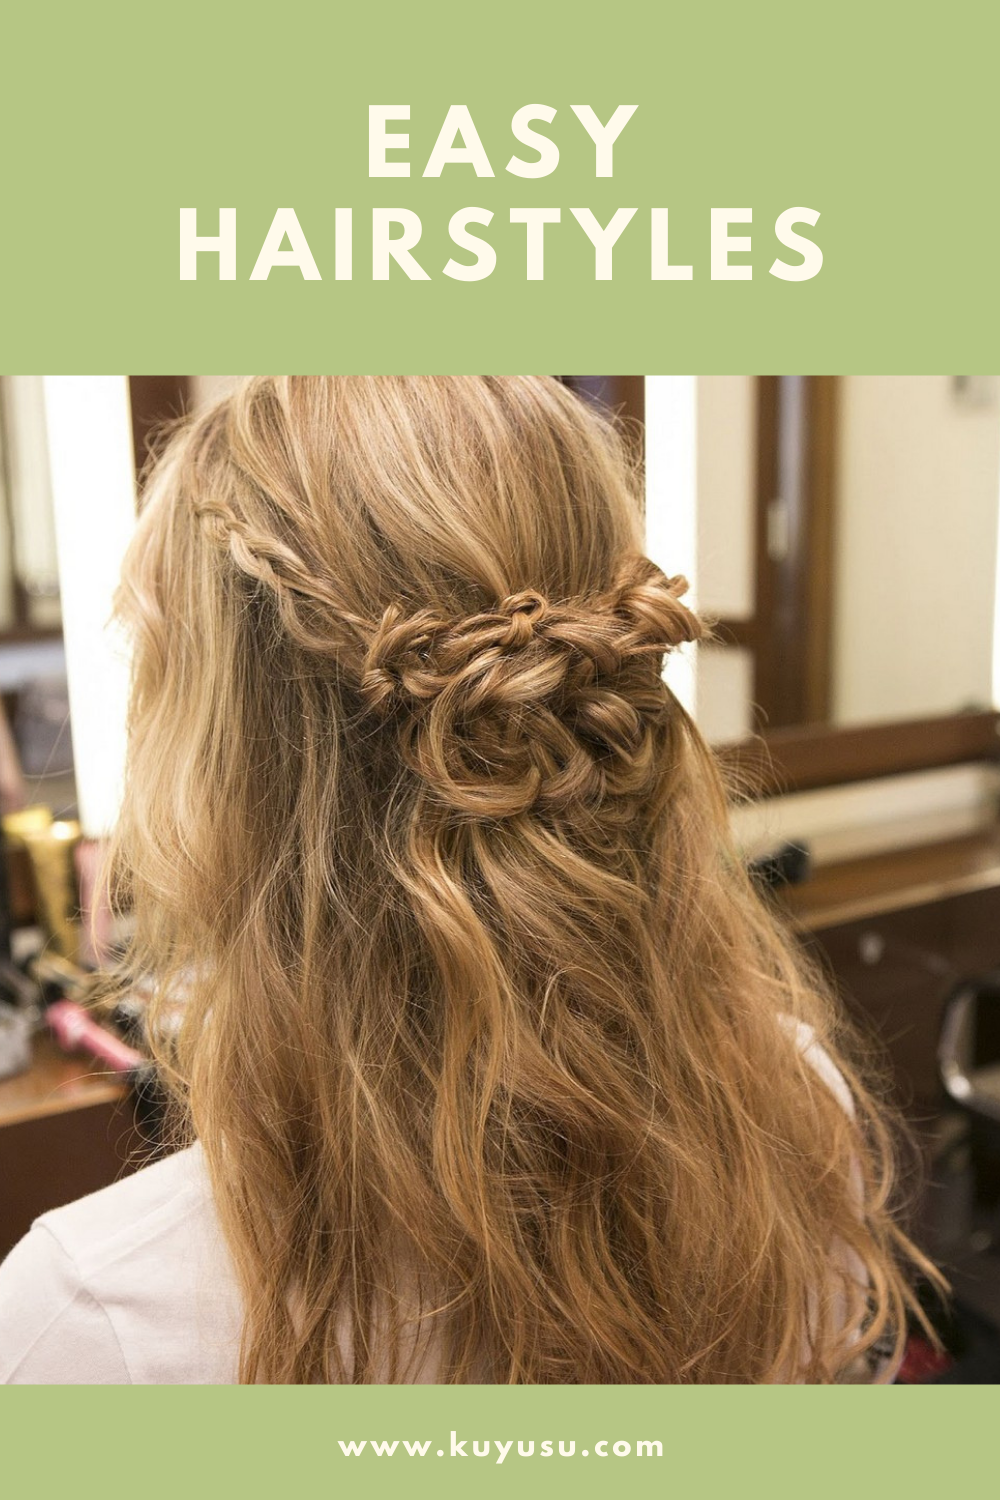 Easy To Do Hairstyles In 2020 Easy Hairstyles Easy To Do Hairstyles Hair Styles